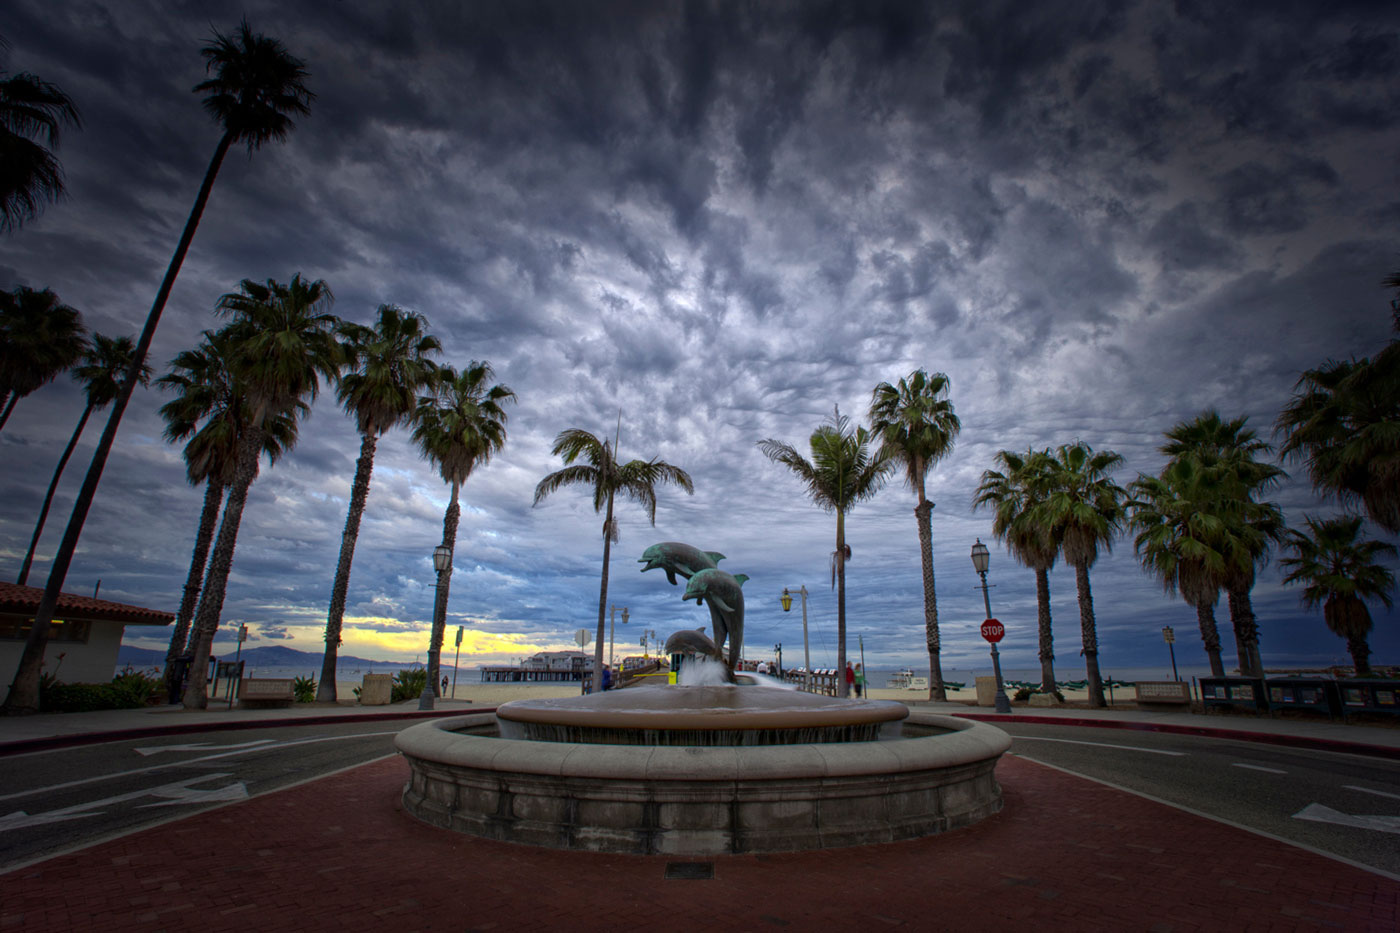 805 Productions Landscape photography -  Photo Yvan Morin - Santa Barbara California